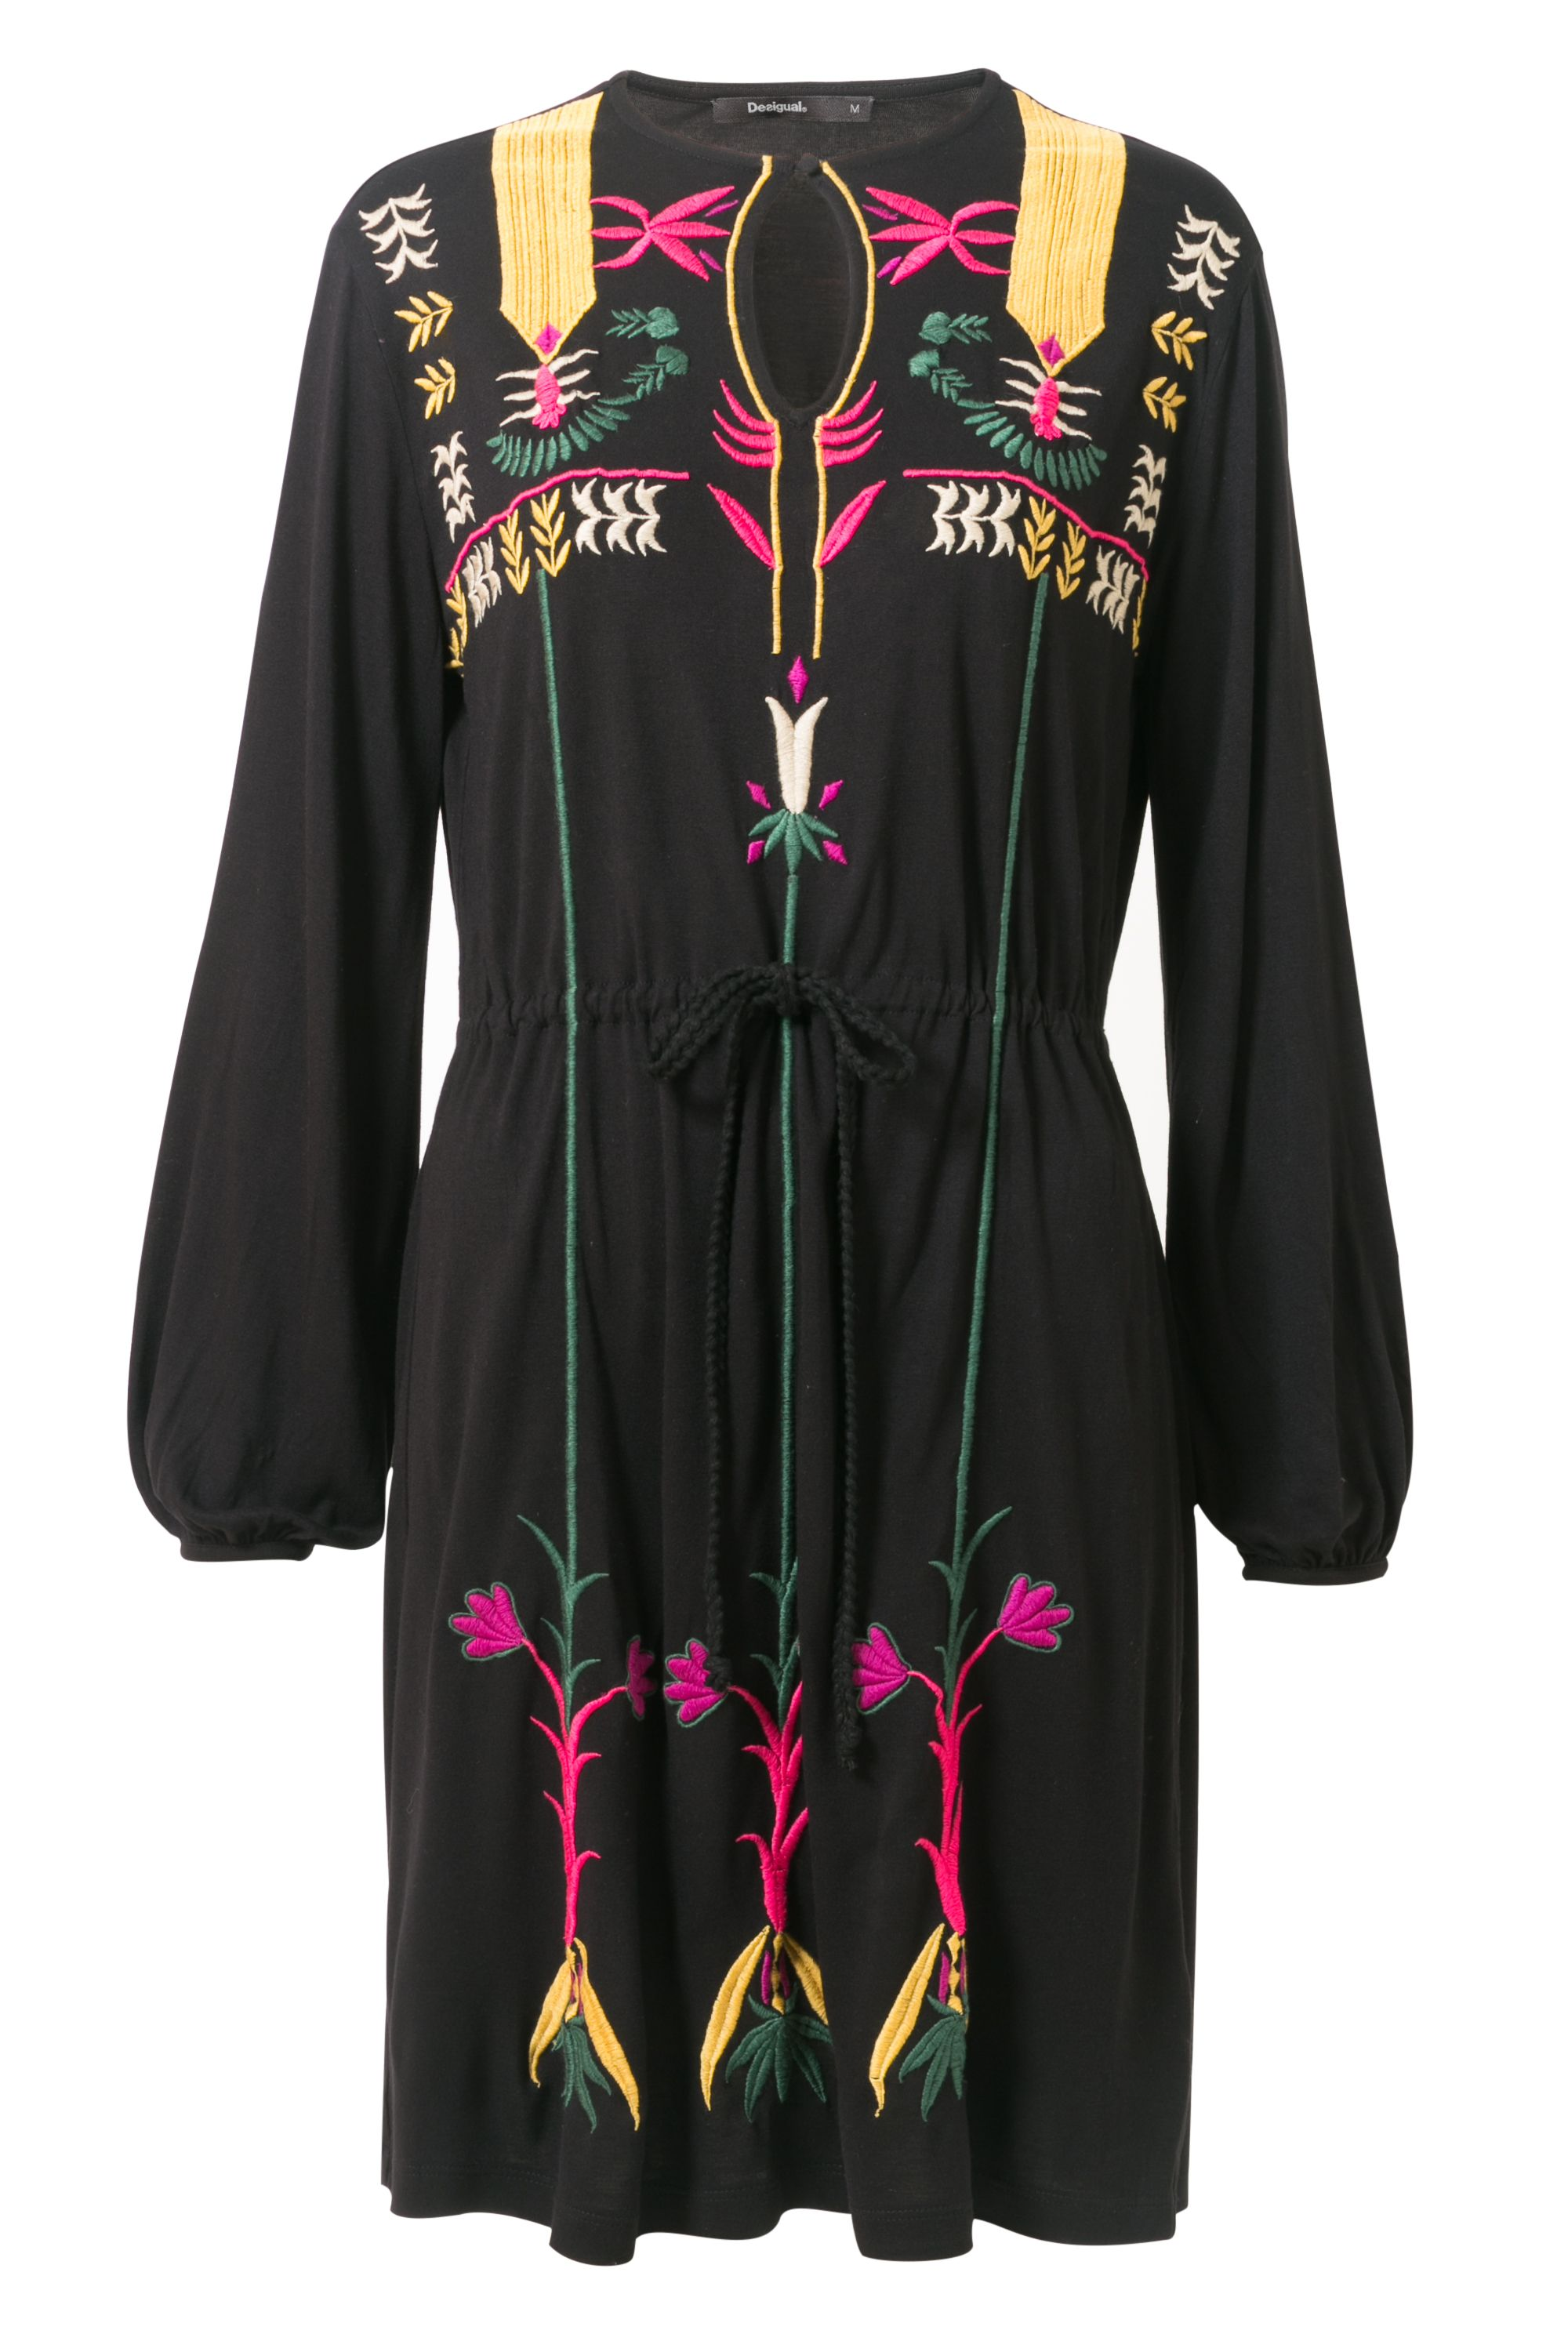 Desigual Dress Georgette, Black